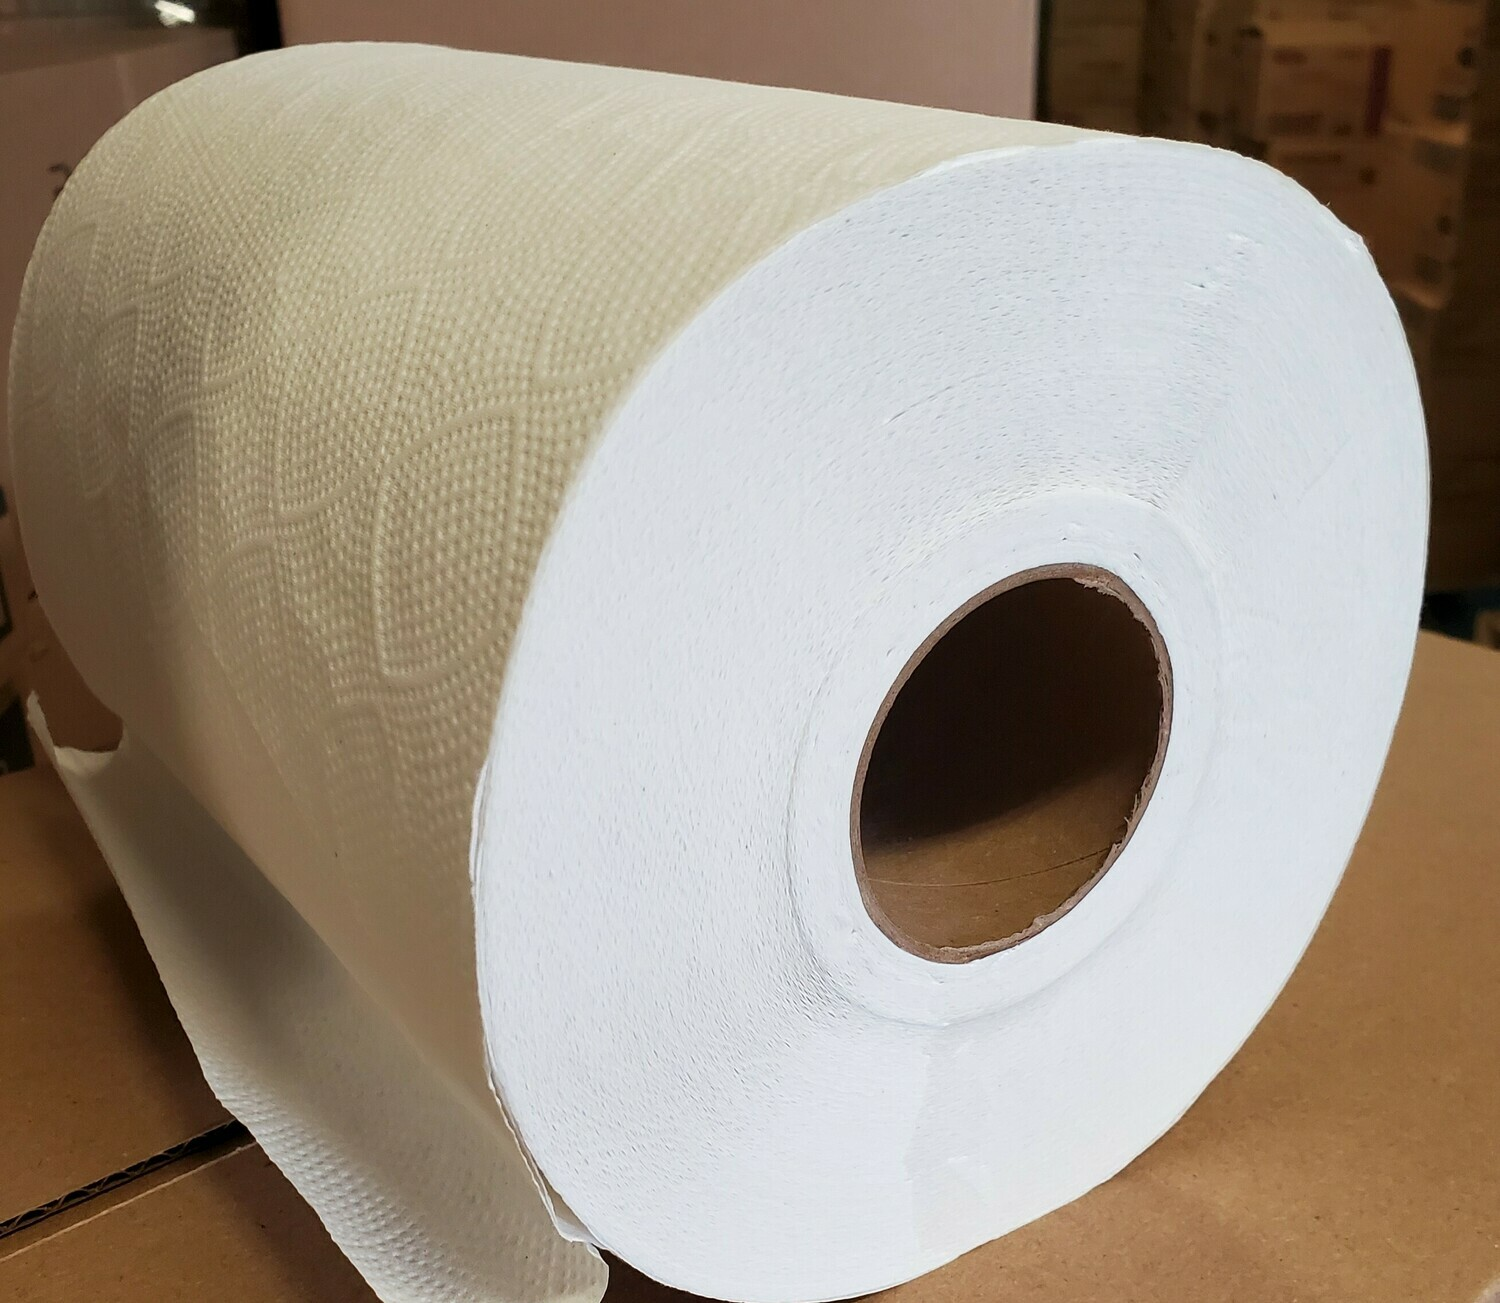 White Swan Rolled Paper Towel